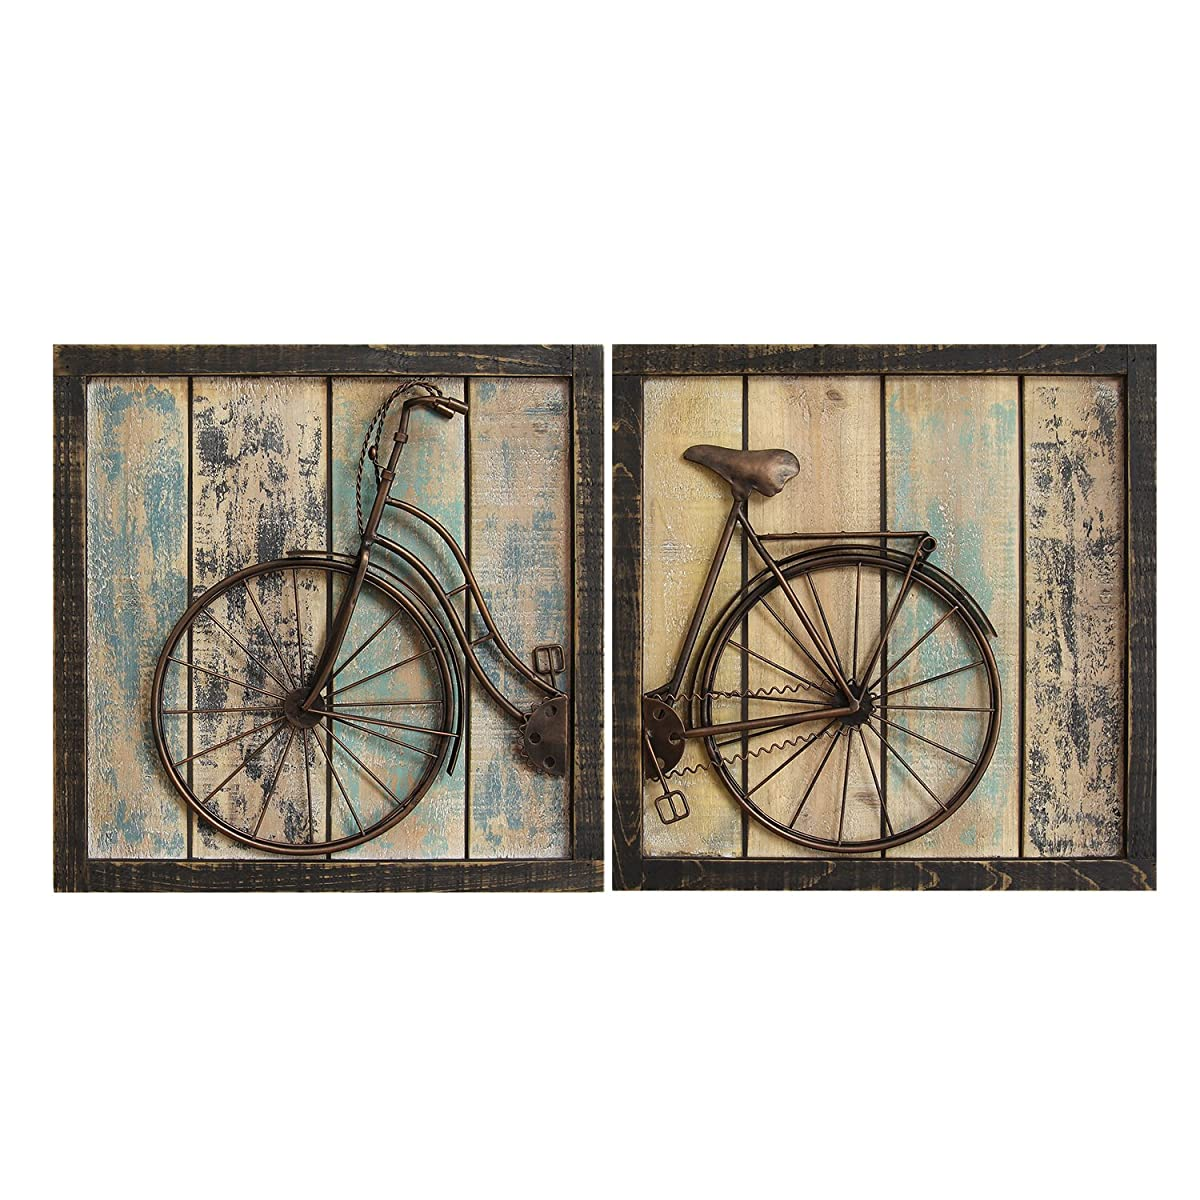 Stratton Home Decor S01209 Bicycle Wall Decor, Set of 2, Rustic